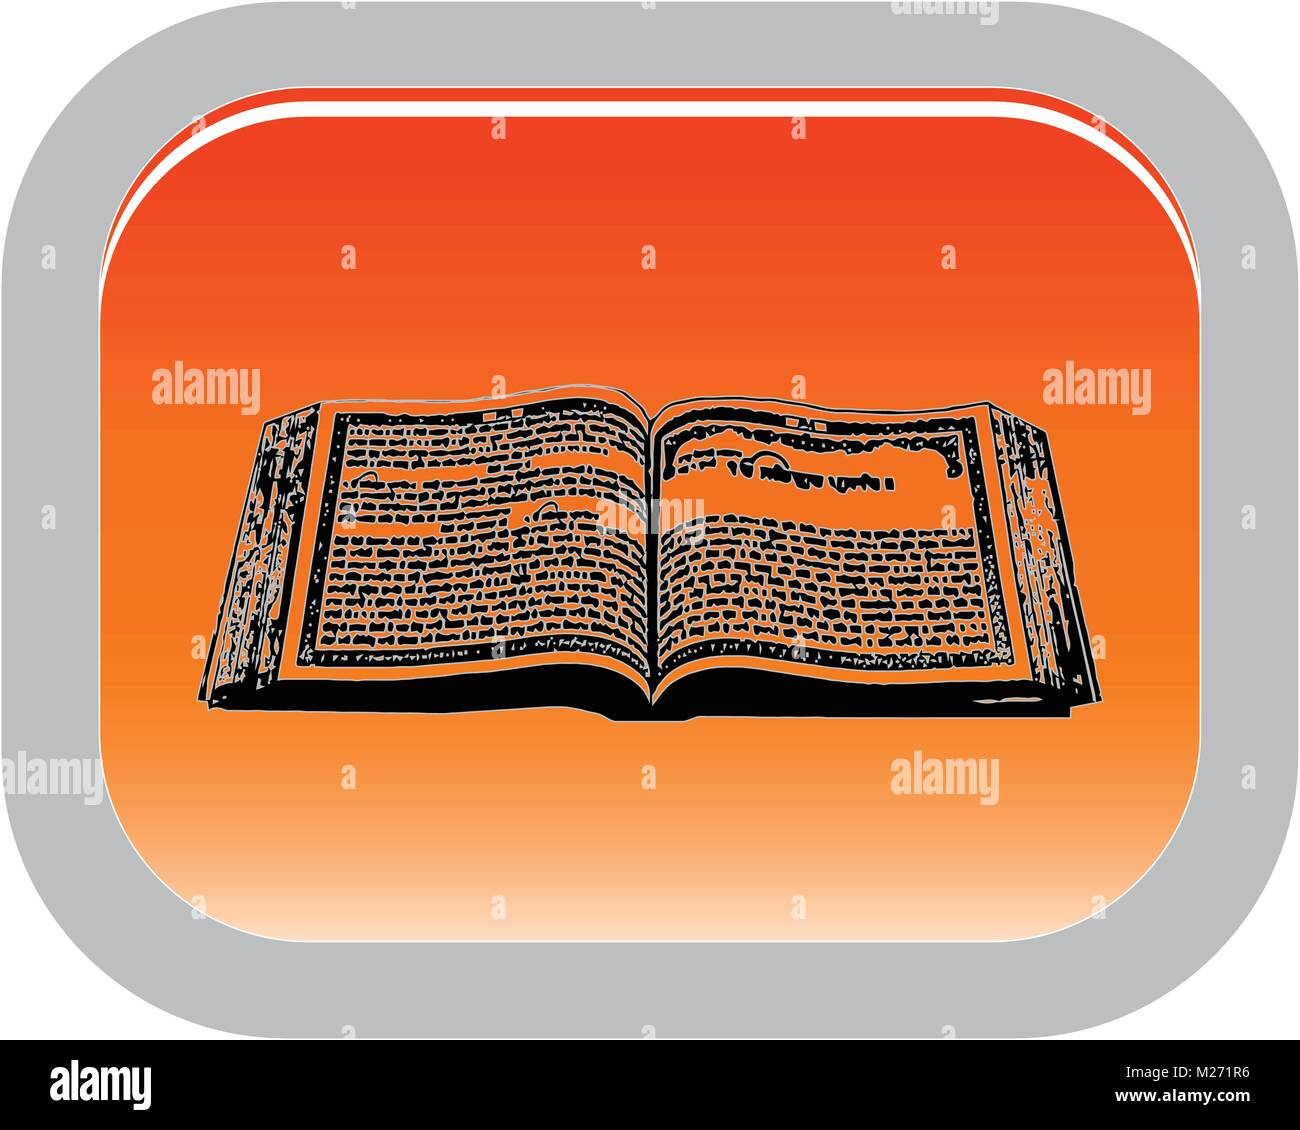 The symbol of the sikhism holy book guru granth sahib button the symbol of the sikhism holy book guru granth sahib button vector biocorpaavc Gallery